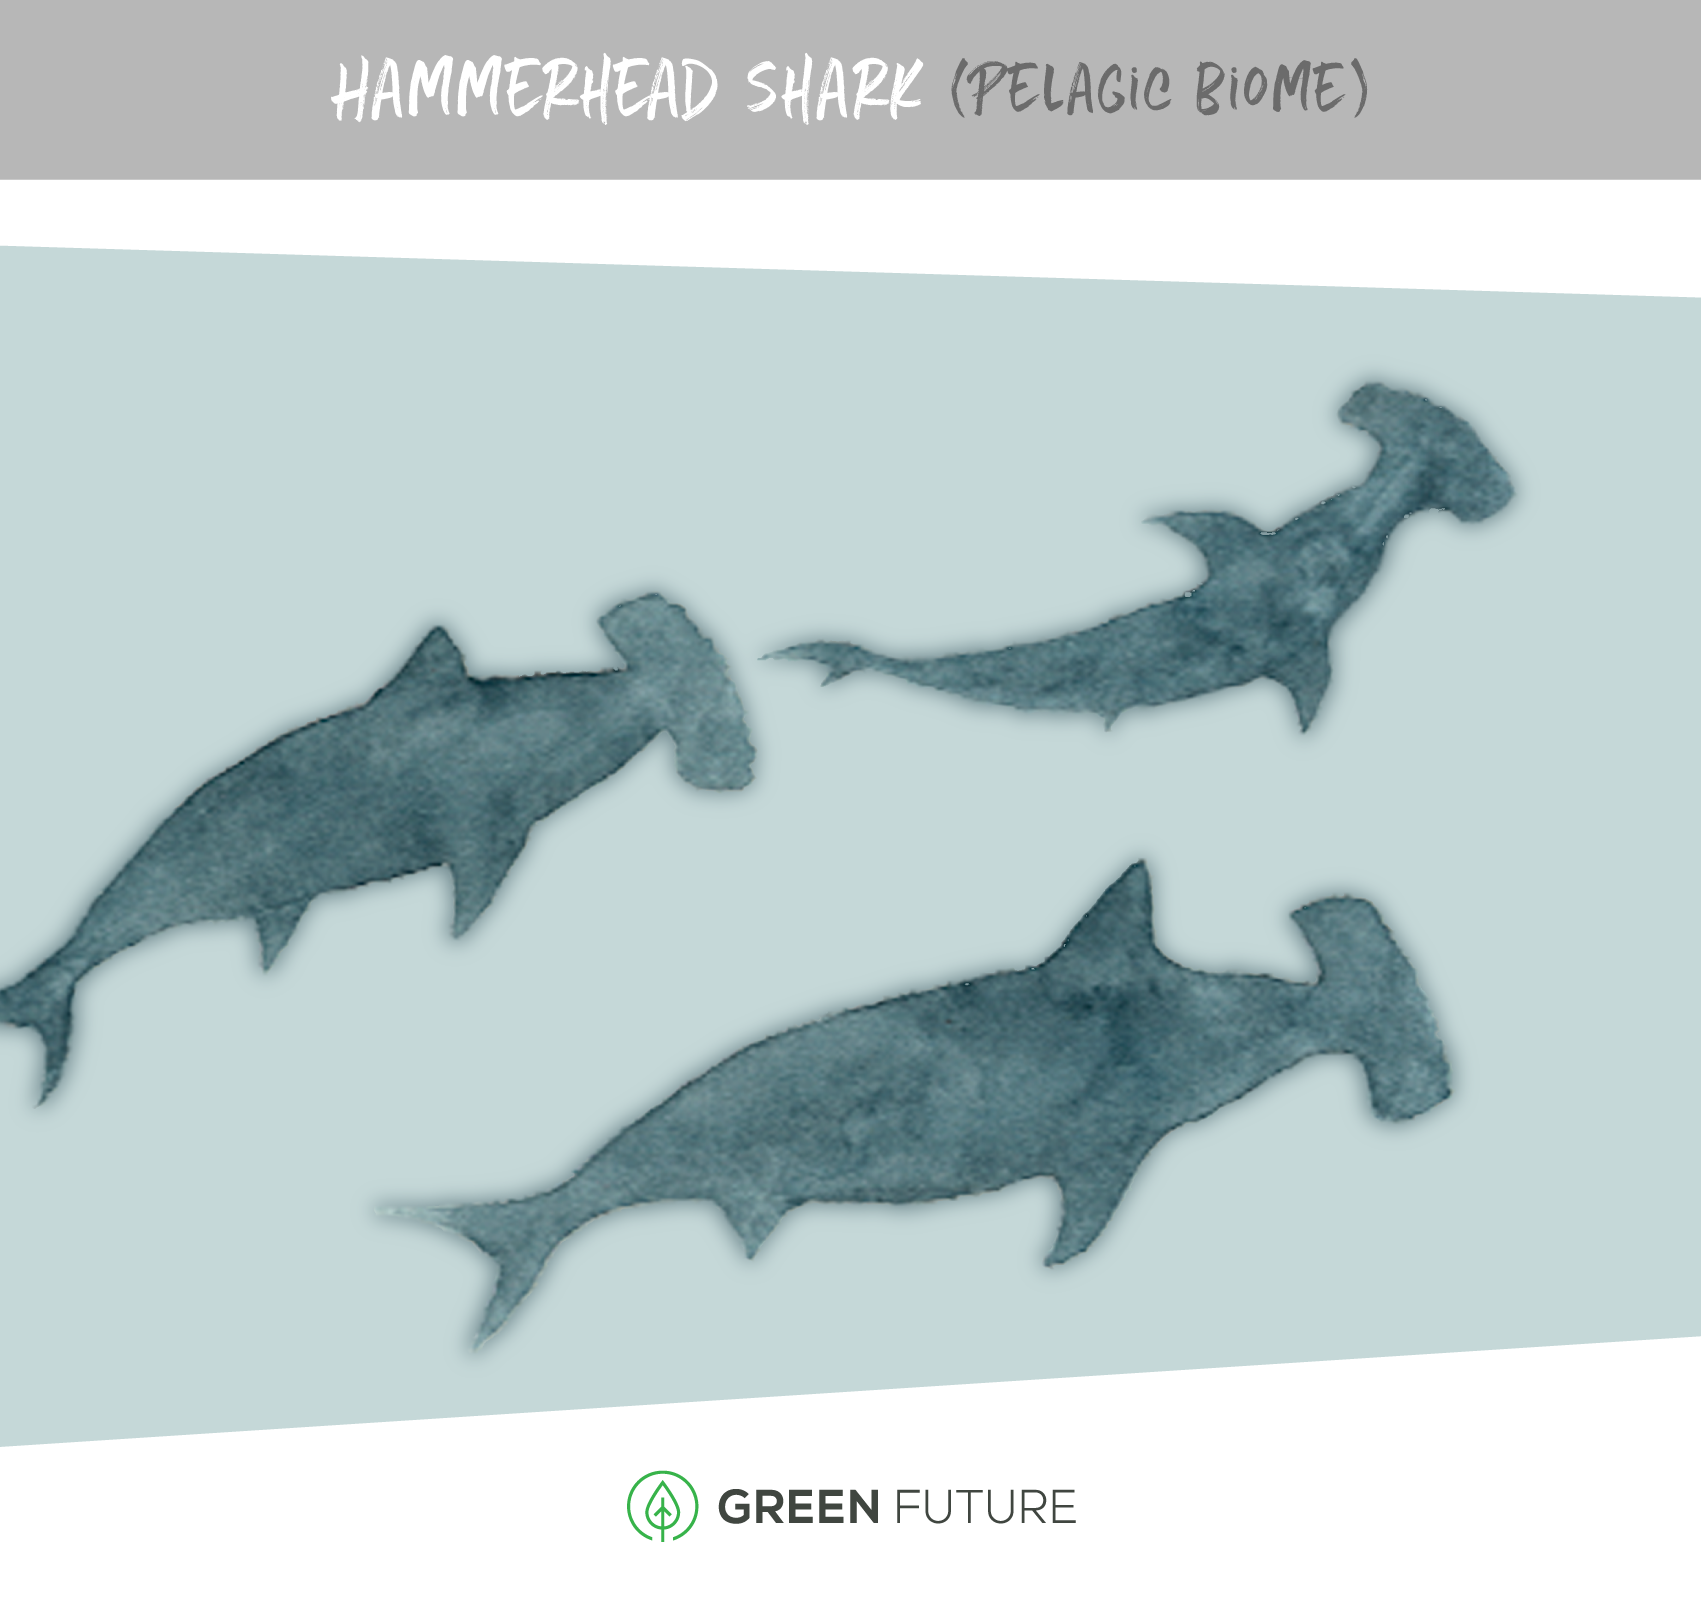 hammerhead shark illustration marine biome